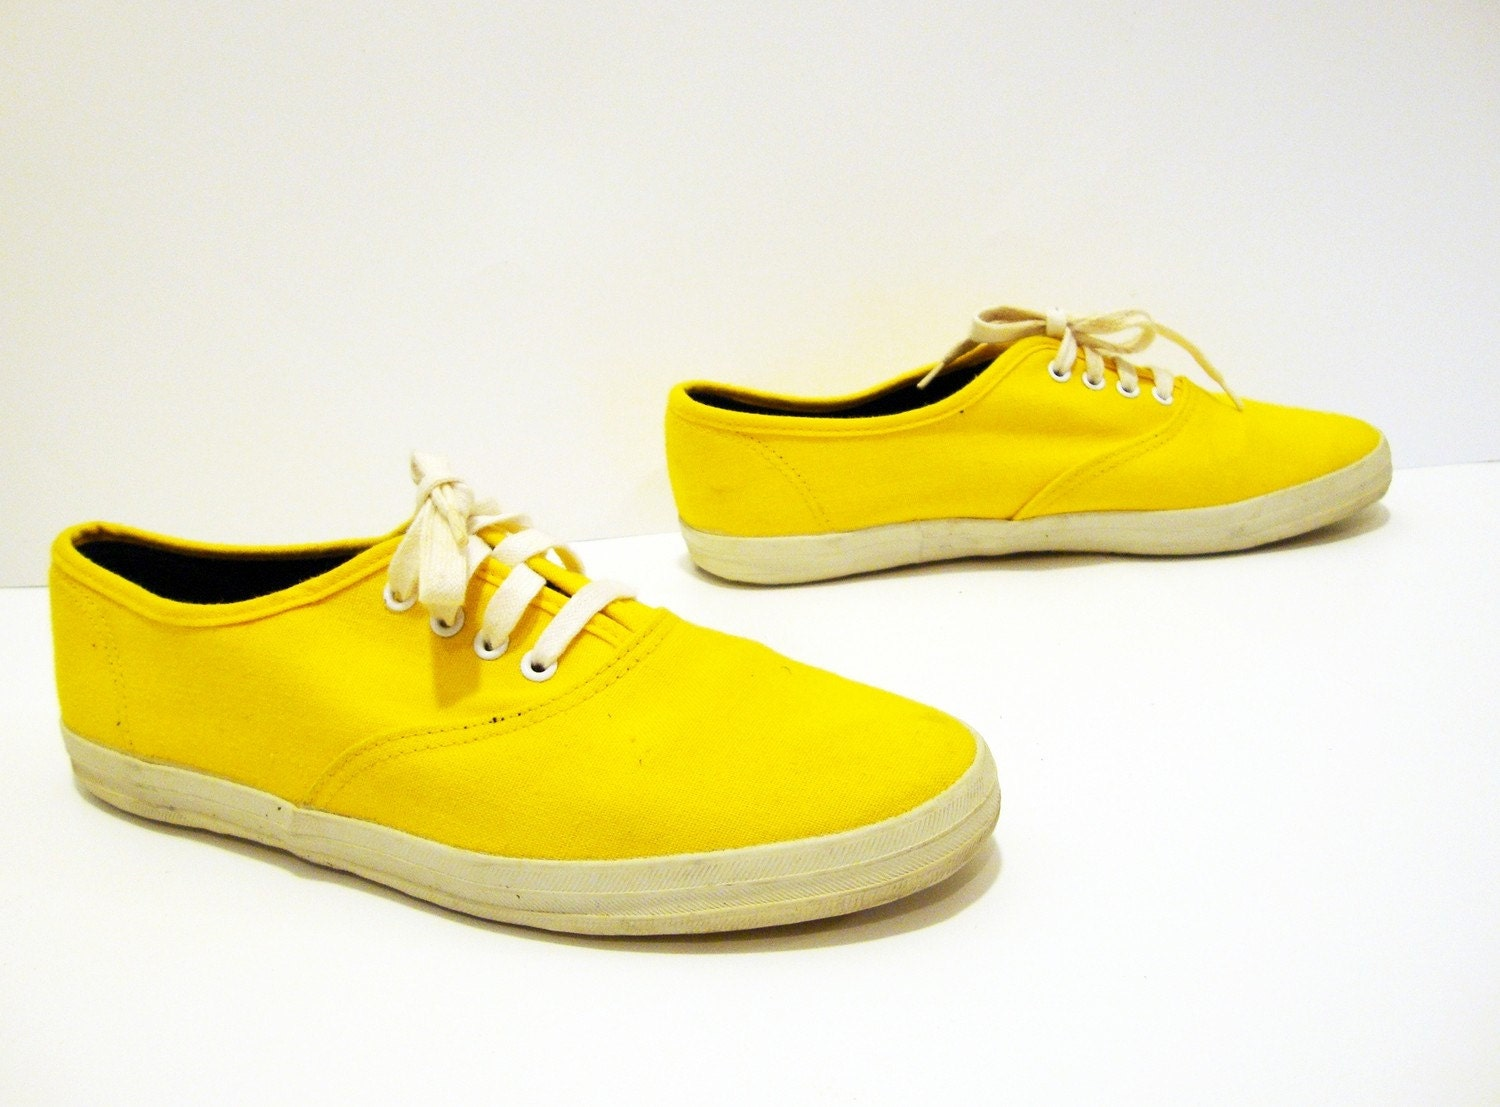 size 8 yellow canvas sneaker tennis shoes by